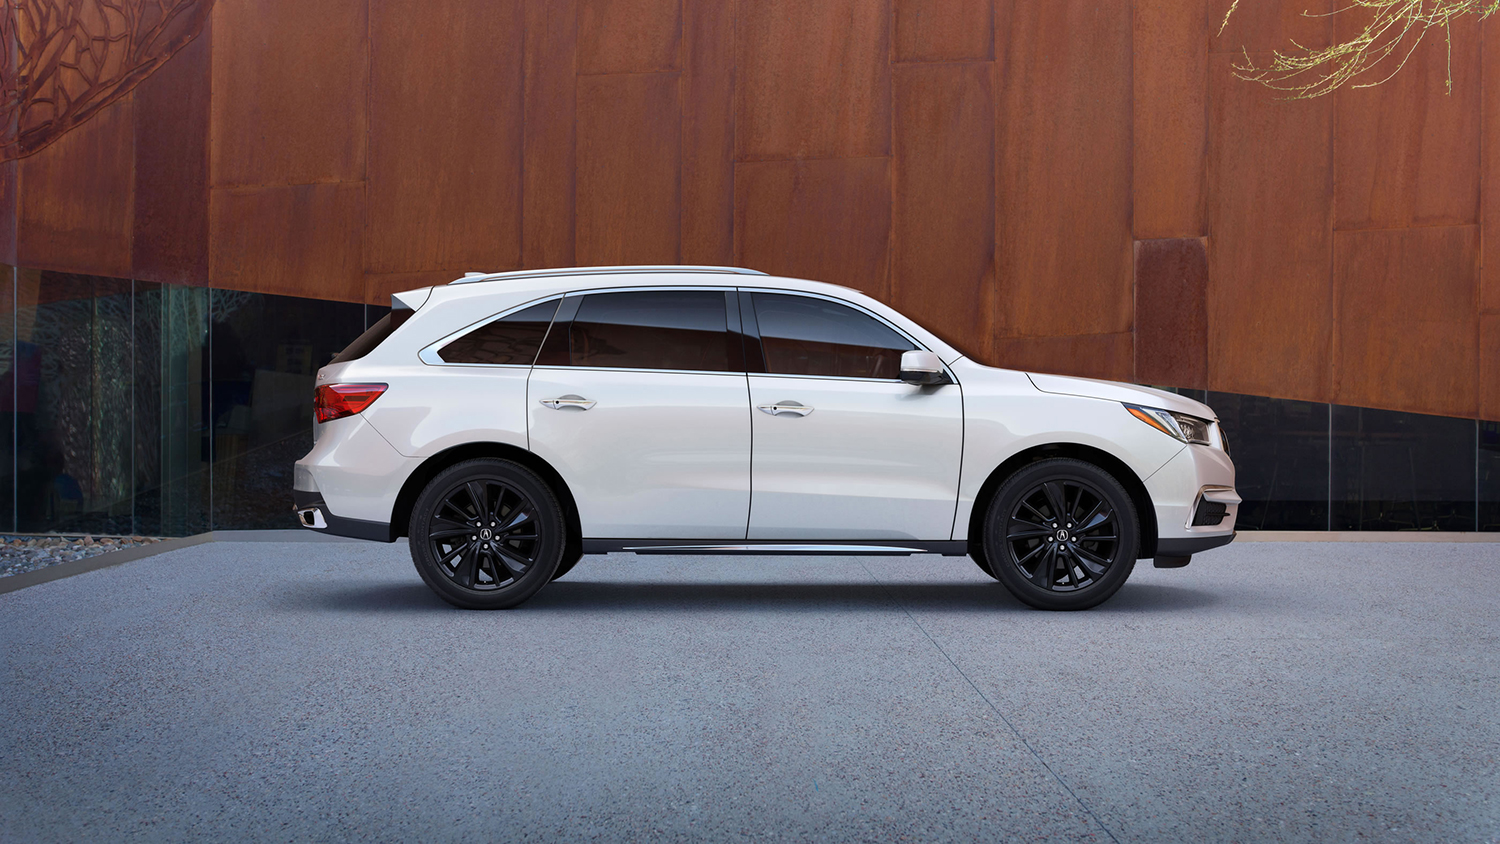 2017 Acura MDX Exterior Side Profile